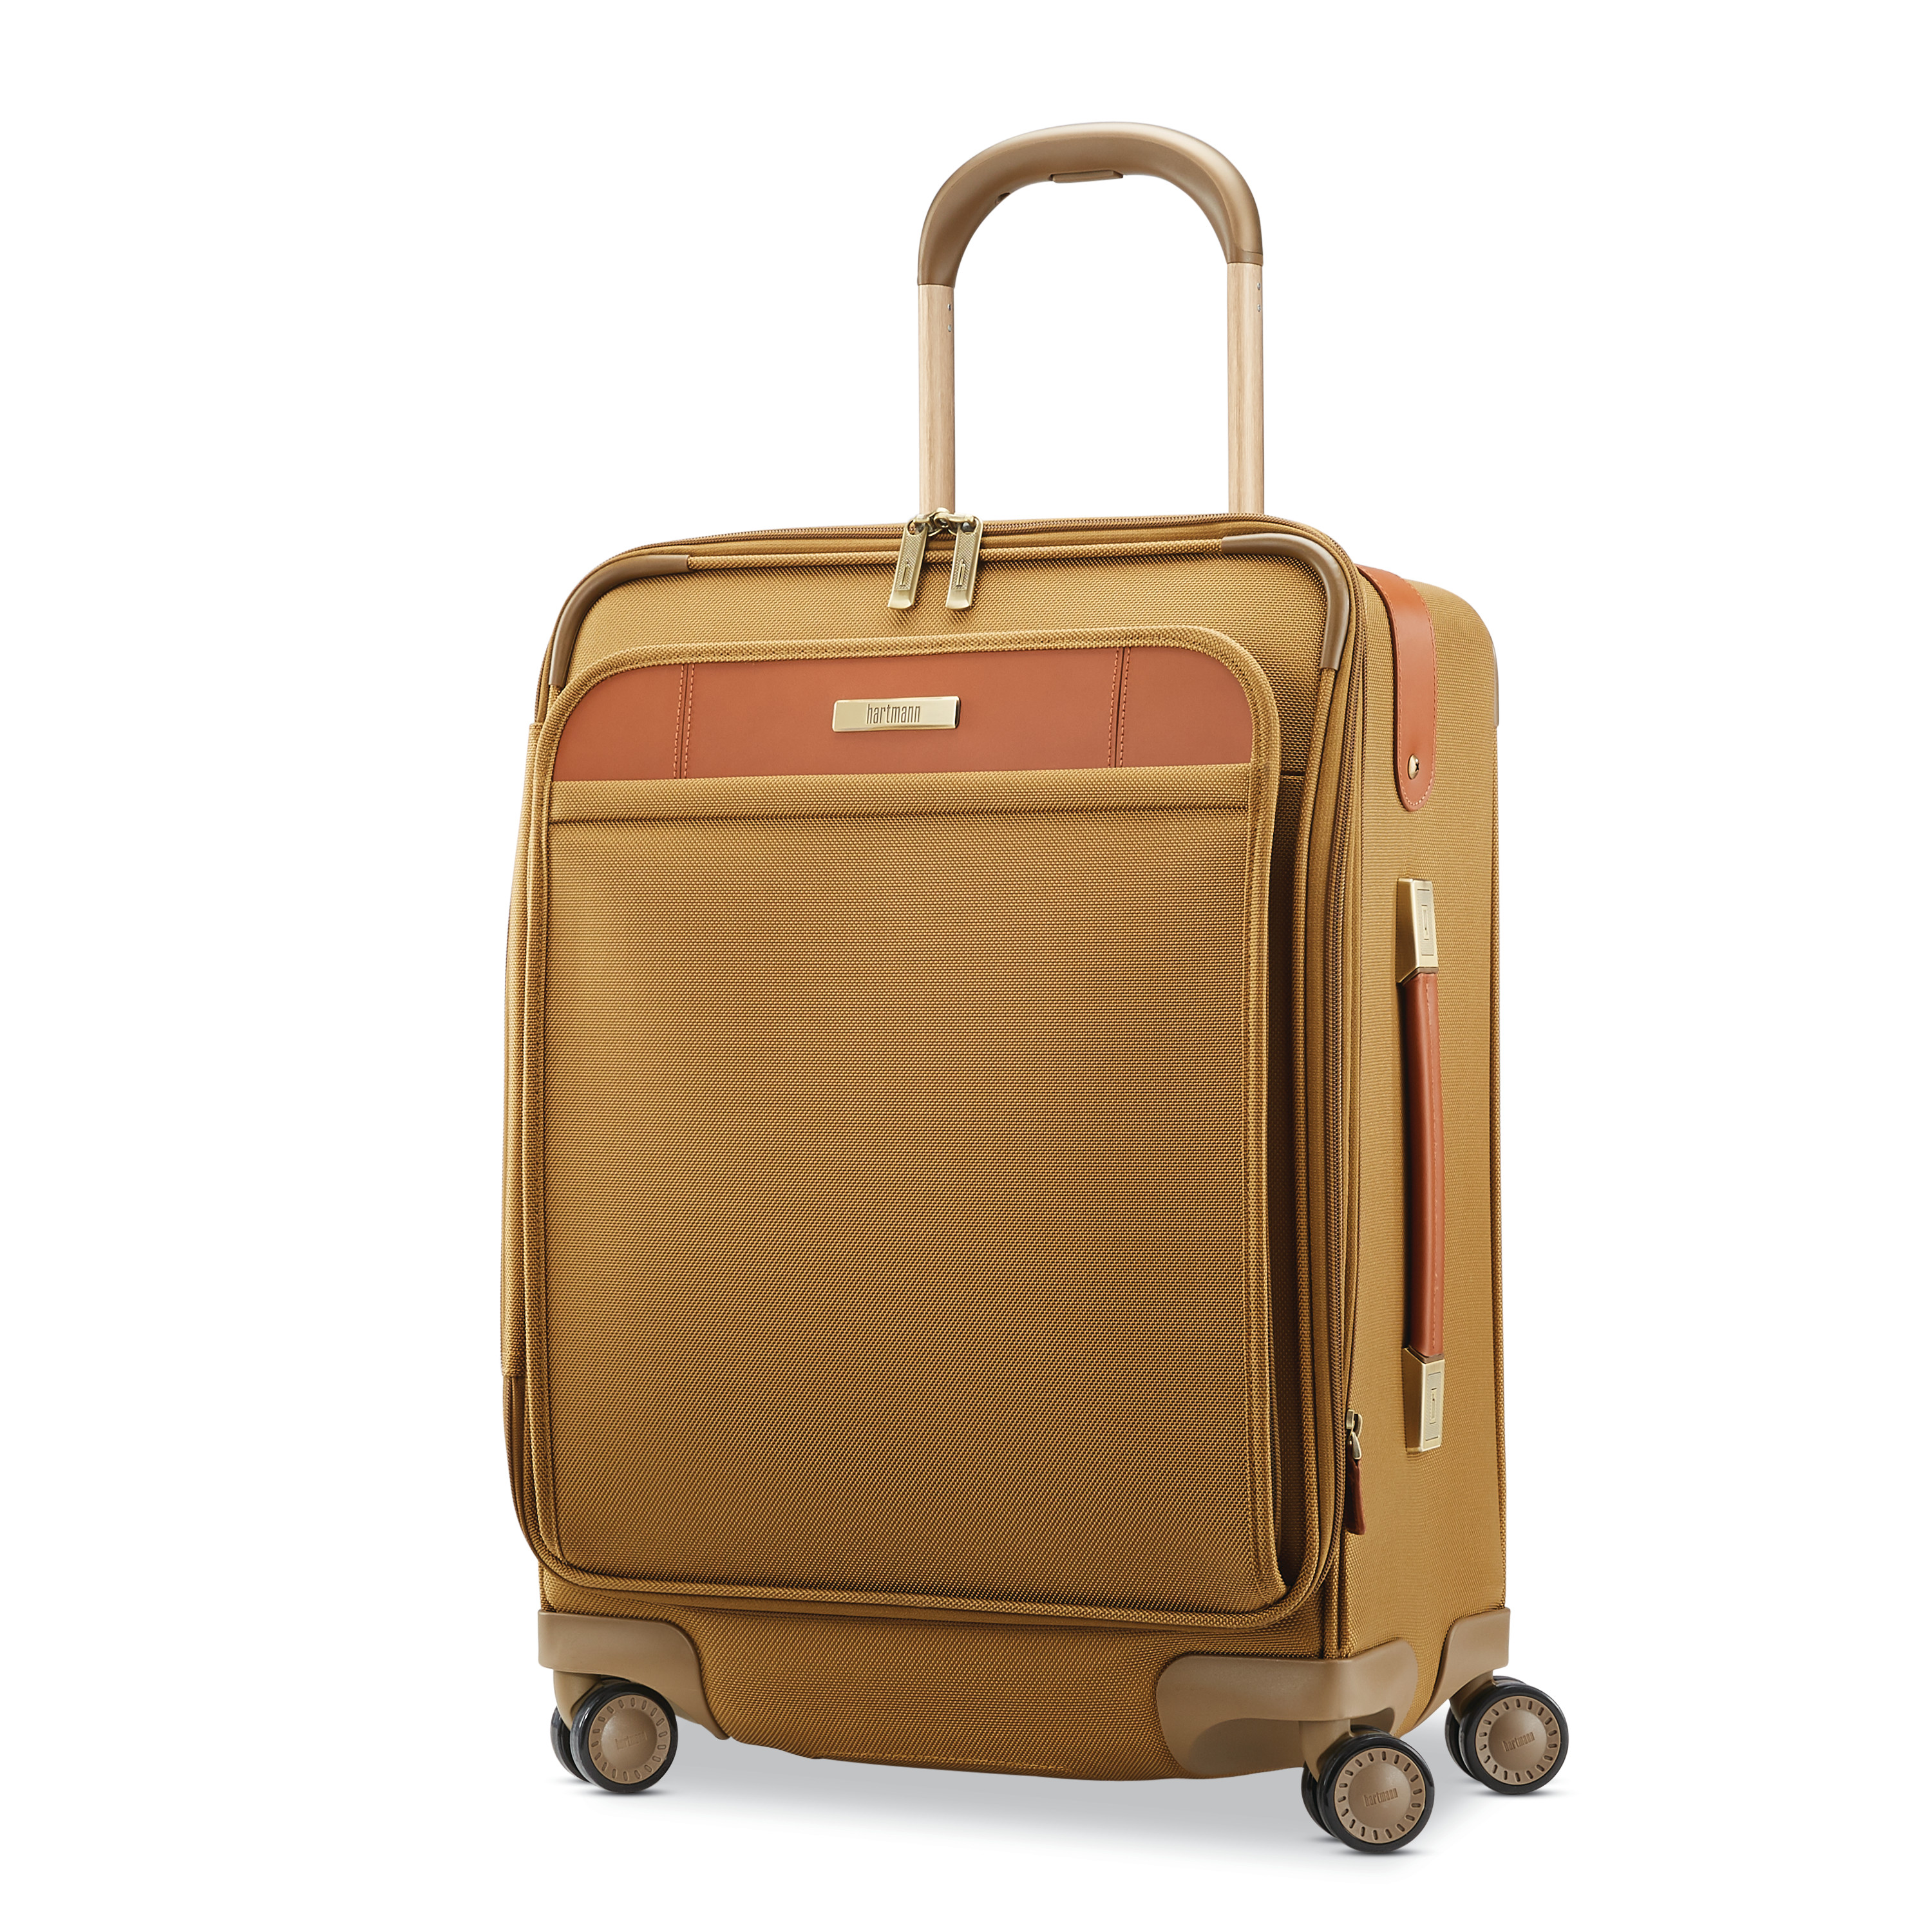 ca53e0d5d0f67 Hartmann Ratio Classic Deluxe 2 Domestic Carry-On Spinner in the color  Safari.